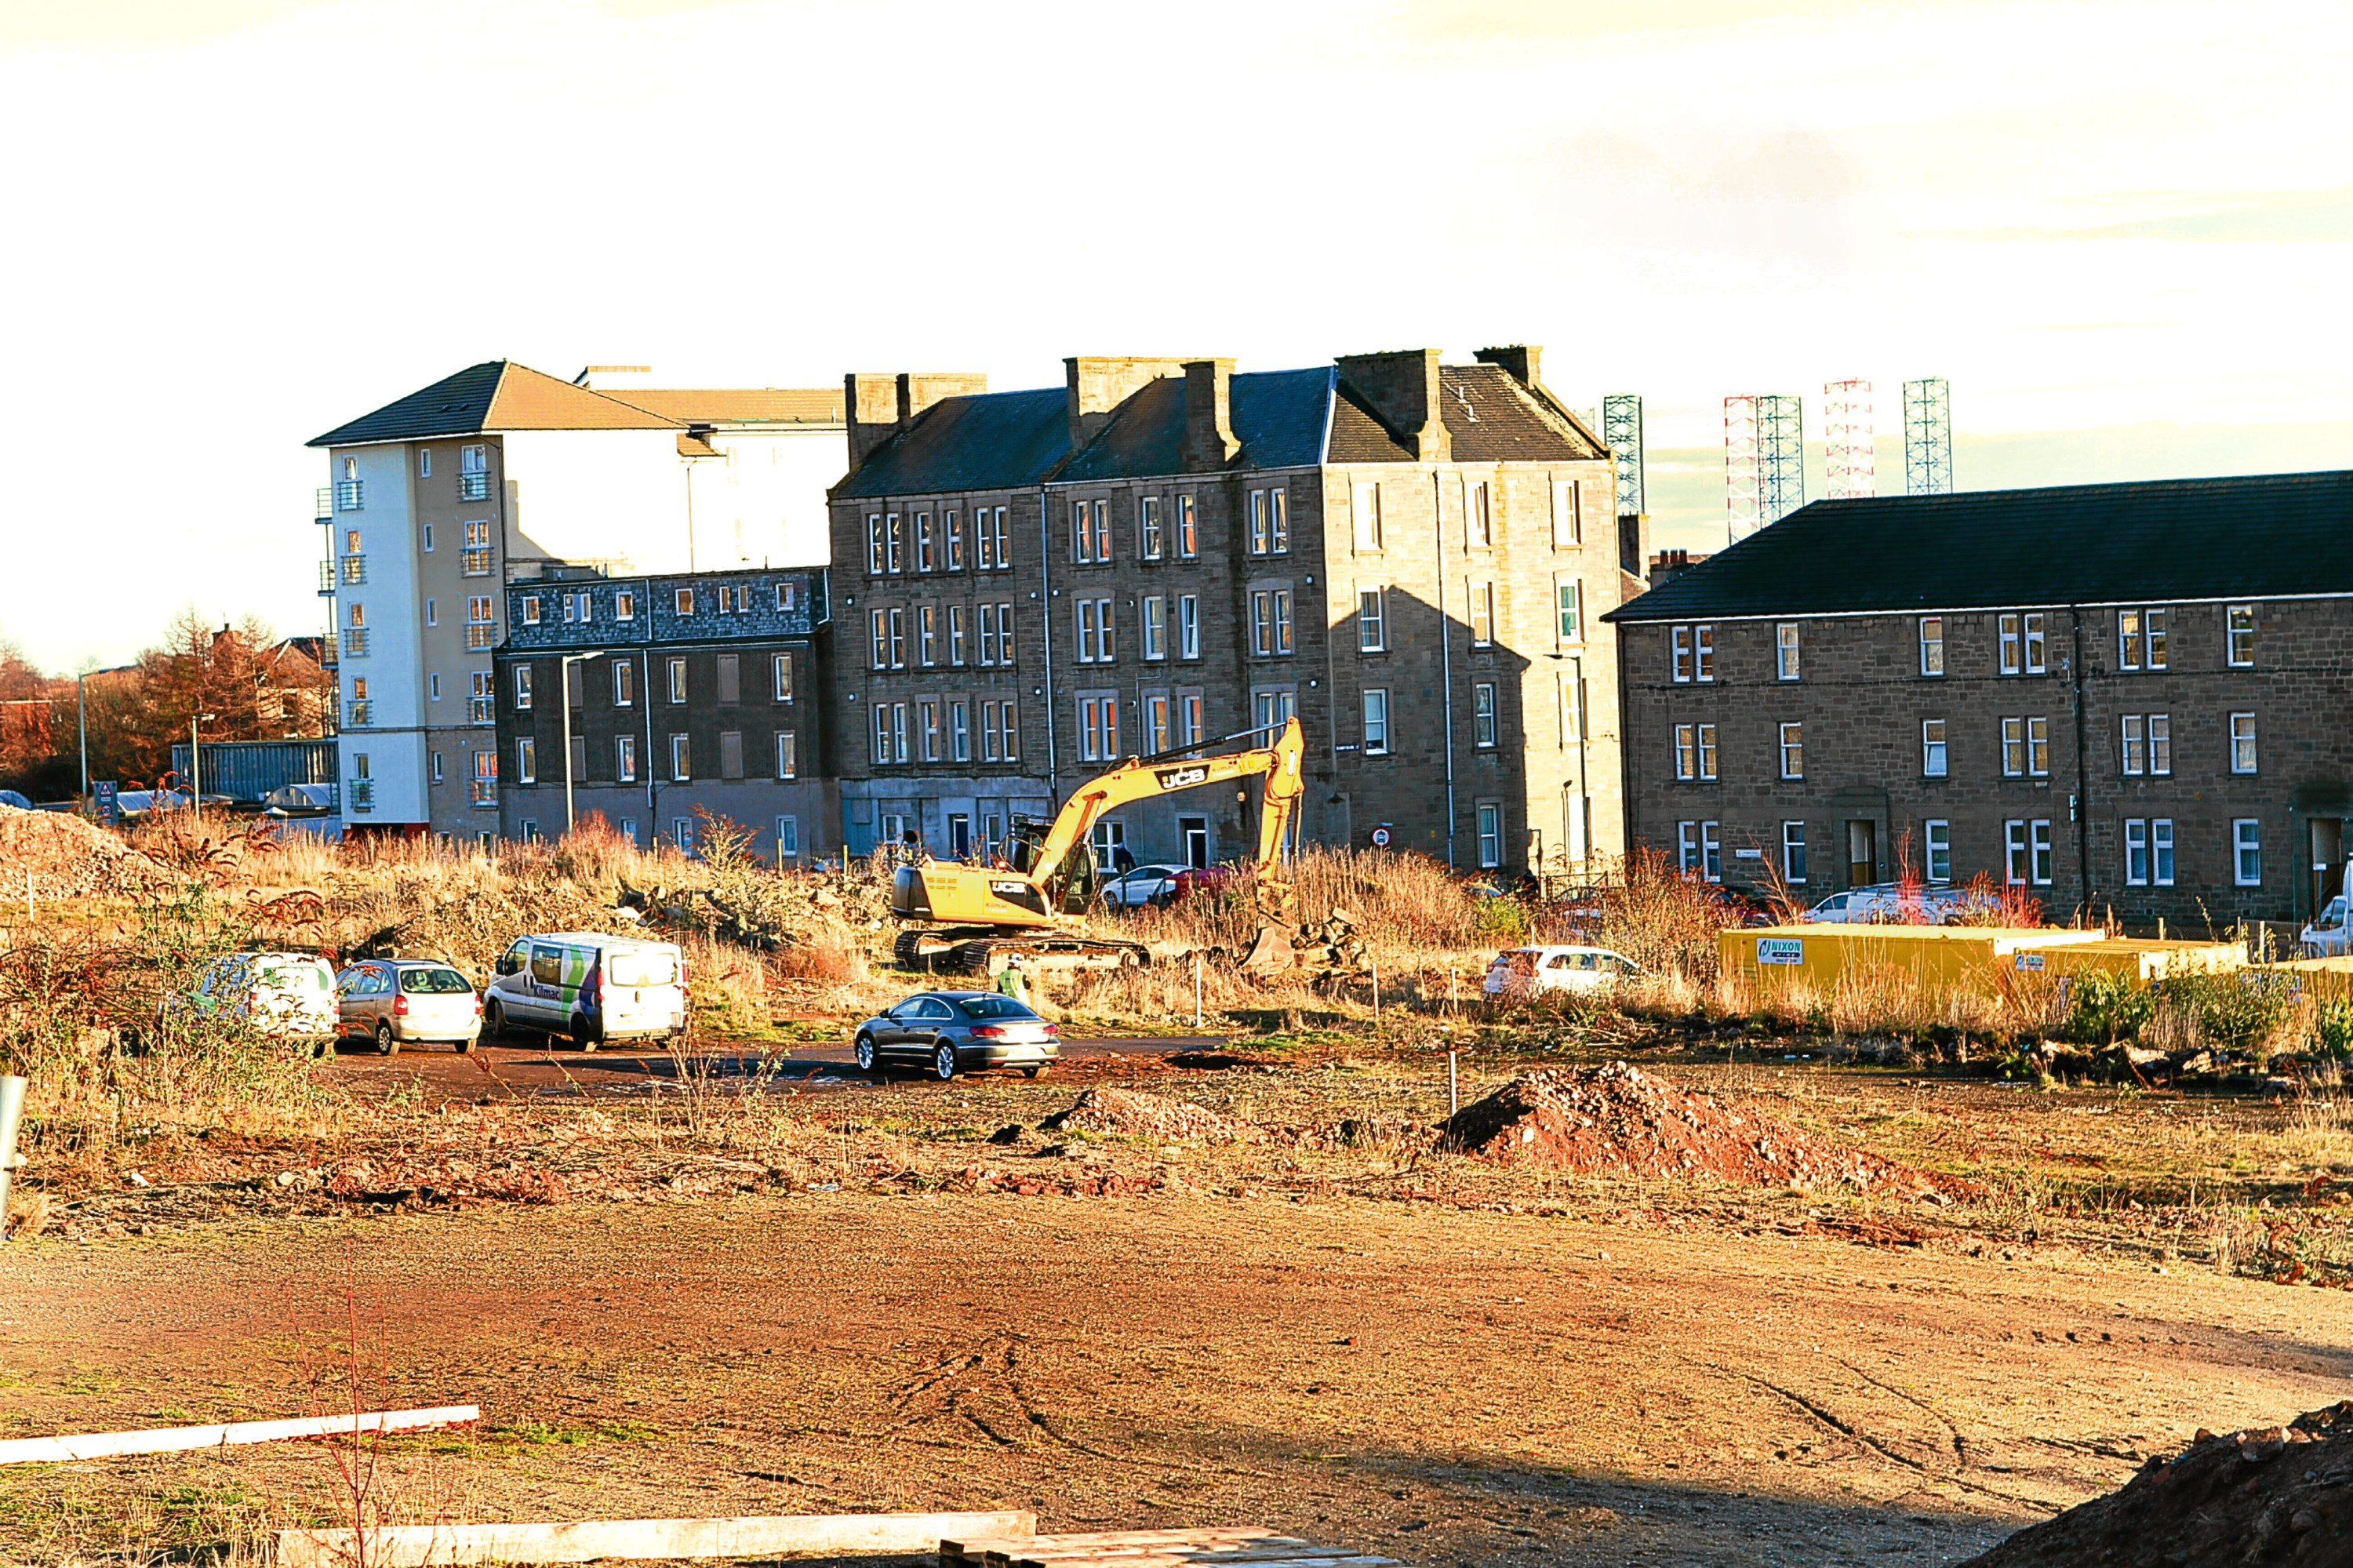 Site of the new school on Coldside campus